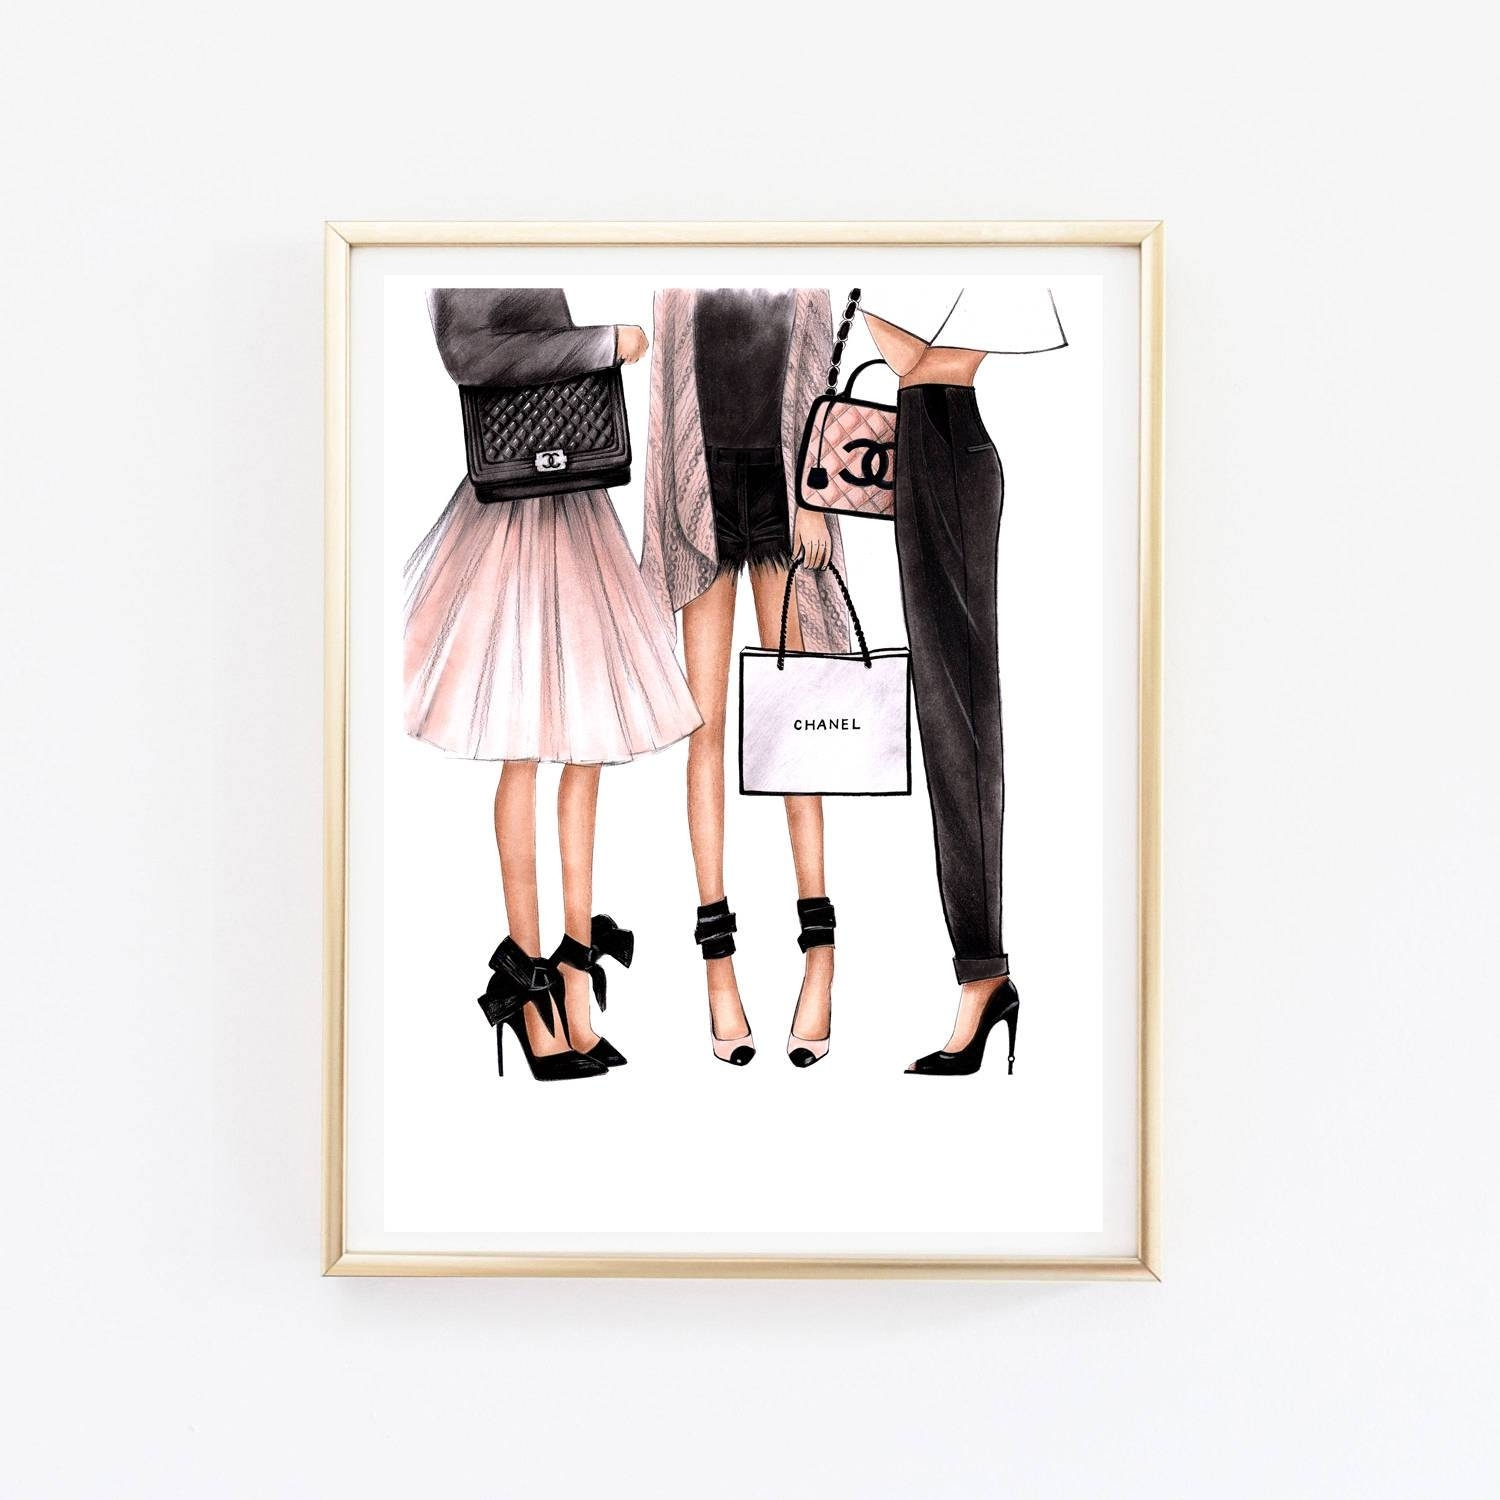 Fashion Illustration Chanel Art Chanel Print Fashion Wall Art Throughout Most Up To Date Fashion Wall Art (View 7 of 20)